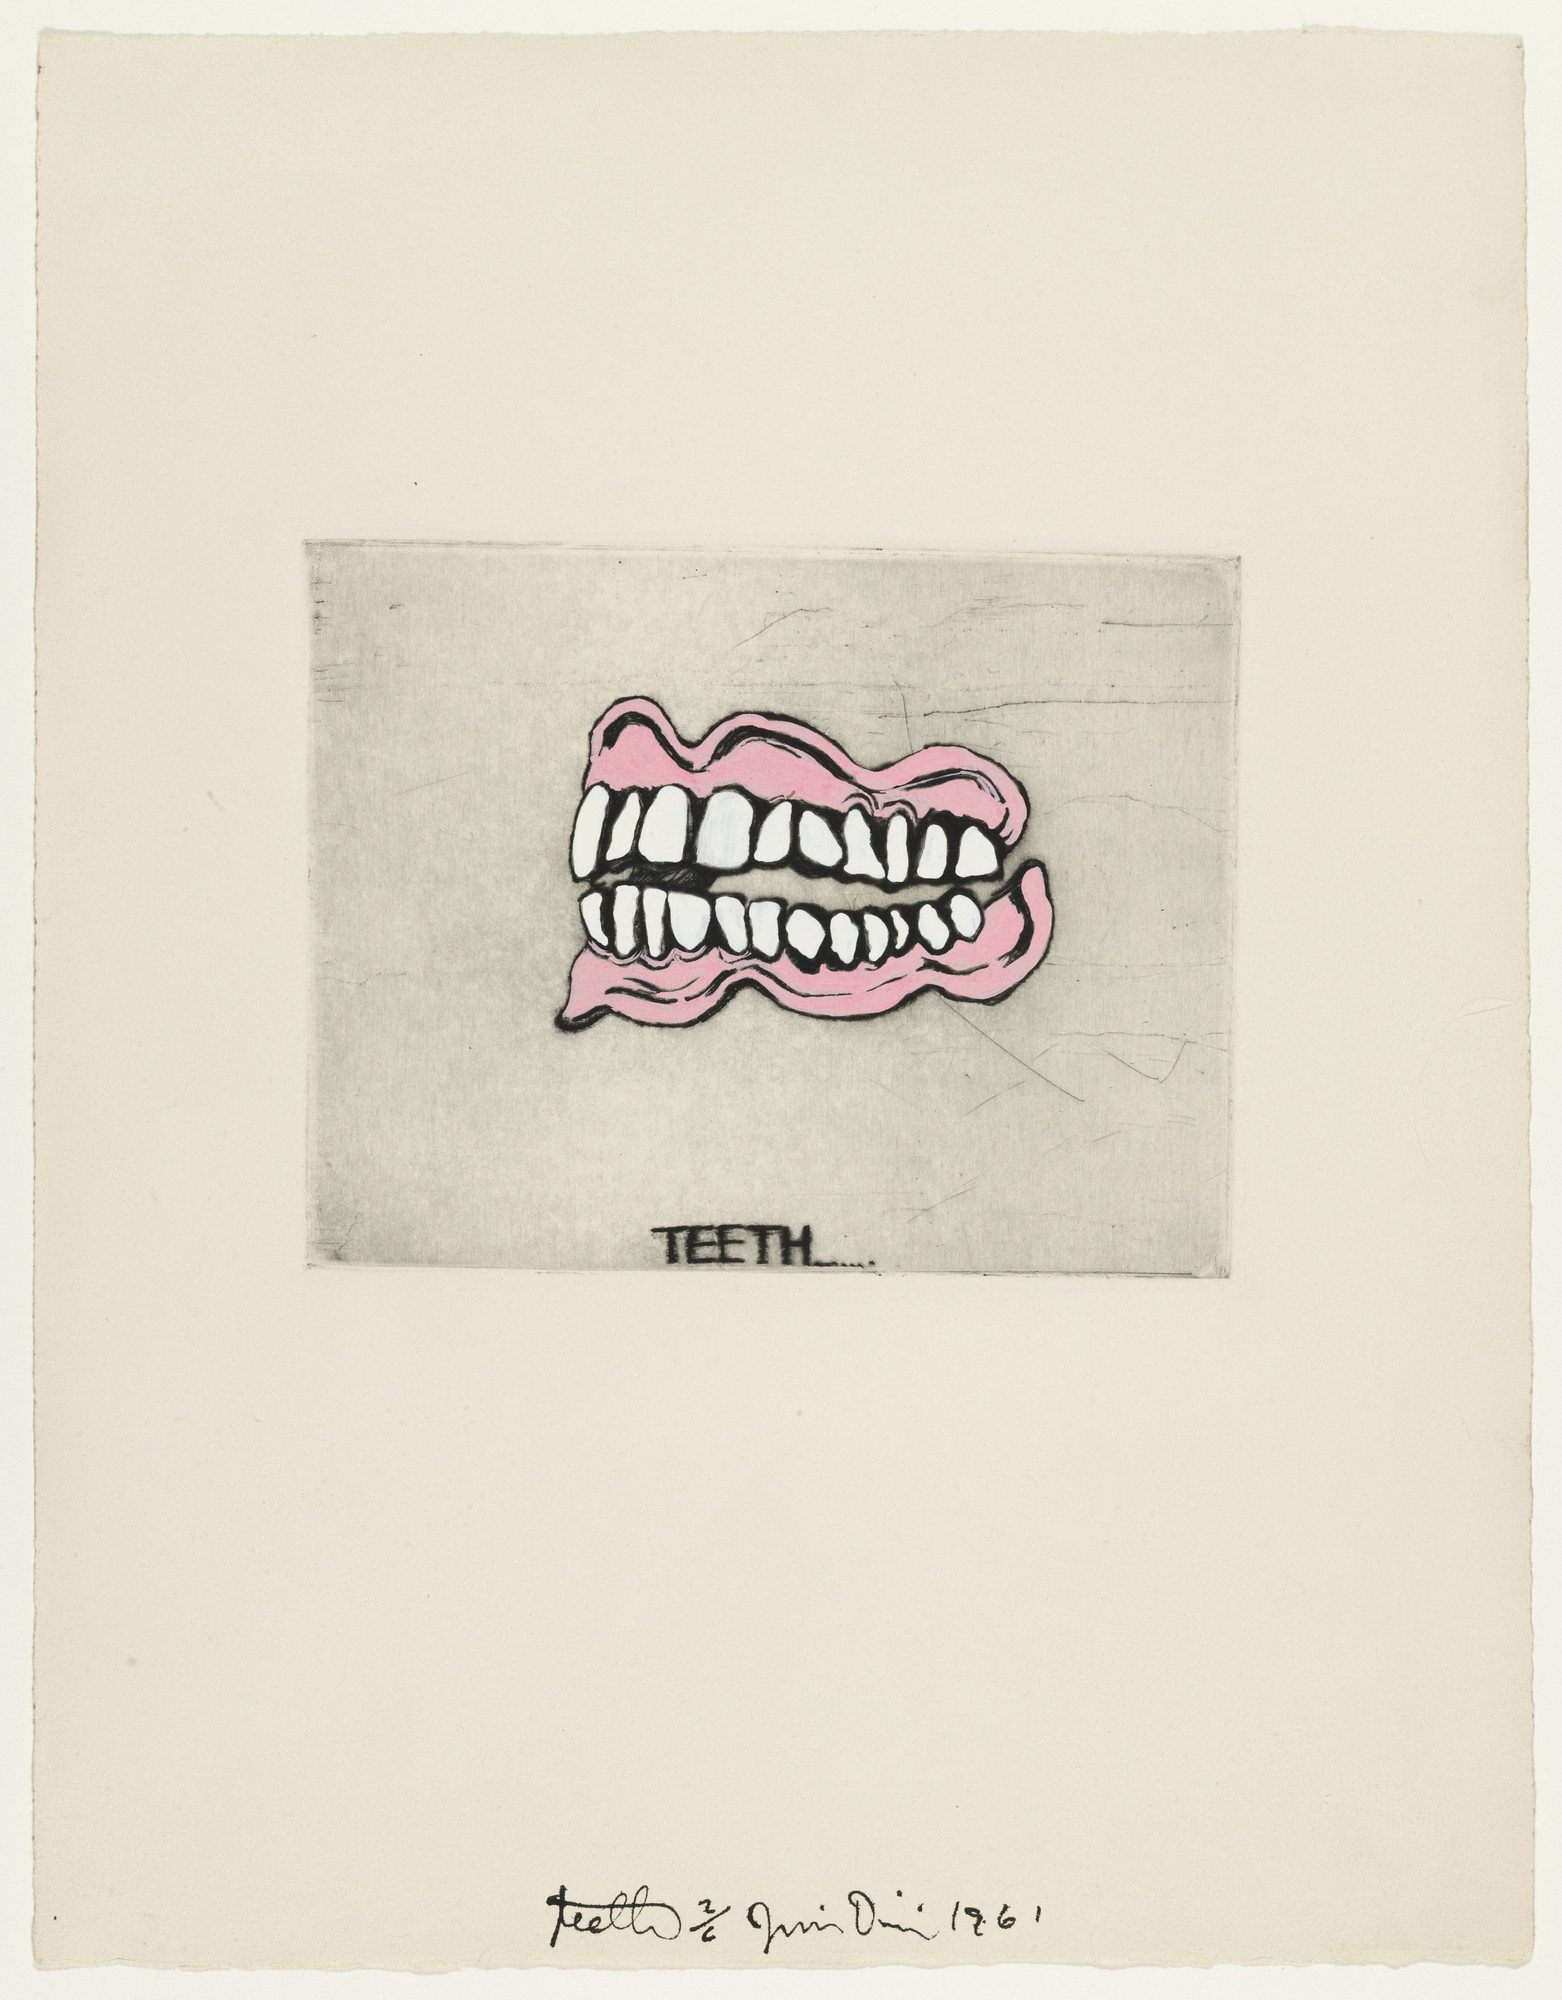 Jim Dine. Teeth fromThese Are Ten Useful Objects Which No One Should Be Without When Traveling. 1961